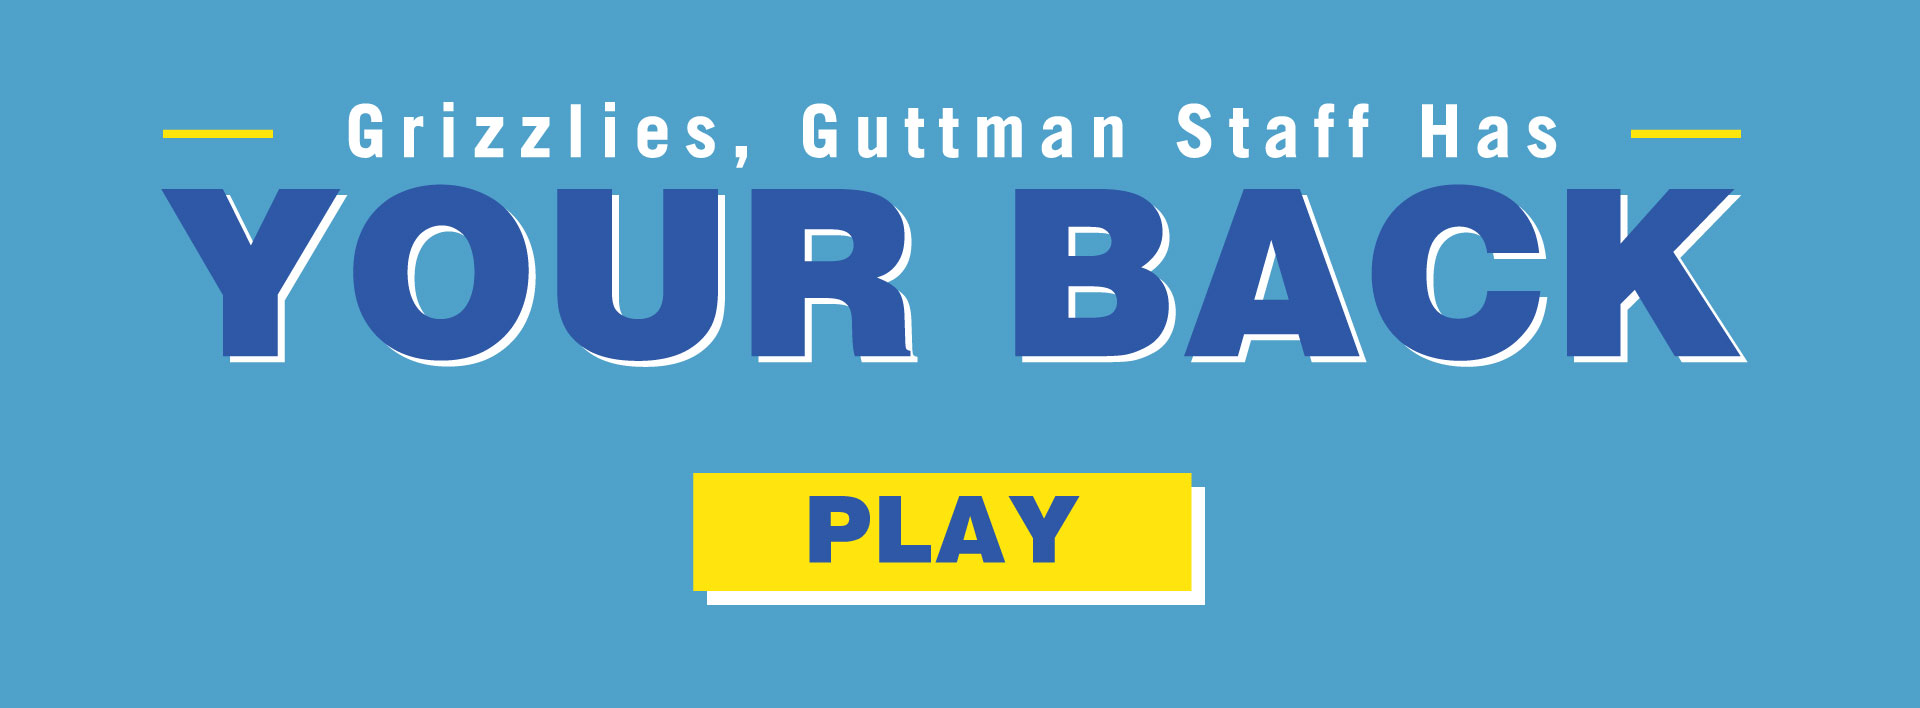 Grizzlies, Guttman staff has your back! click to play video